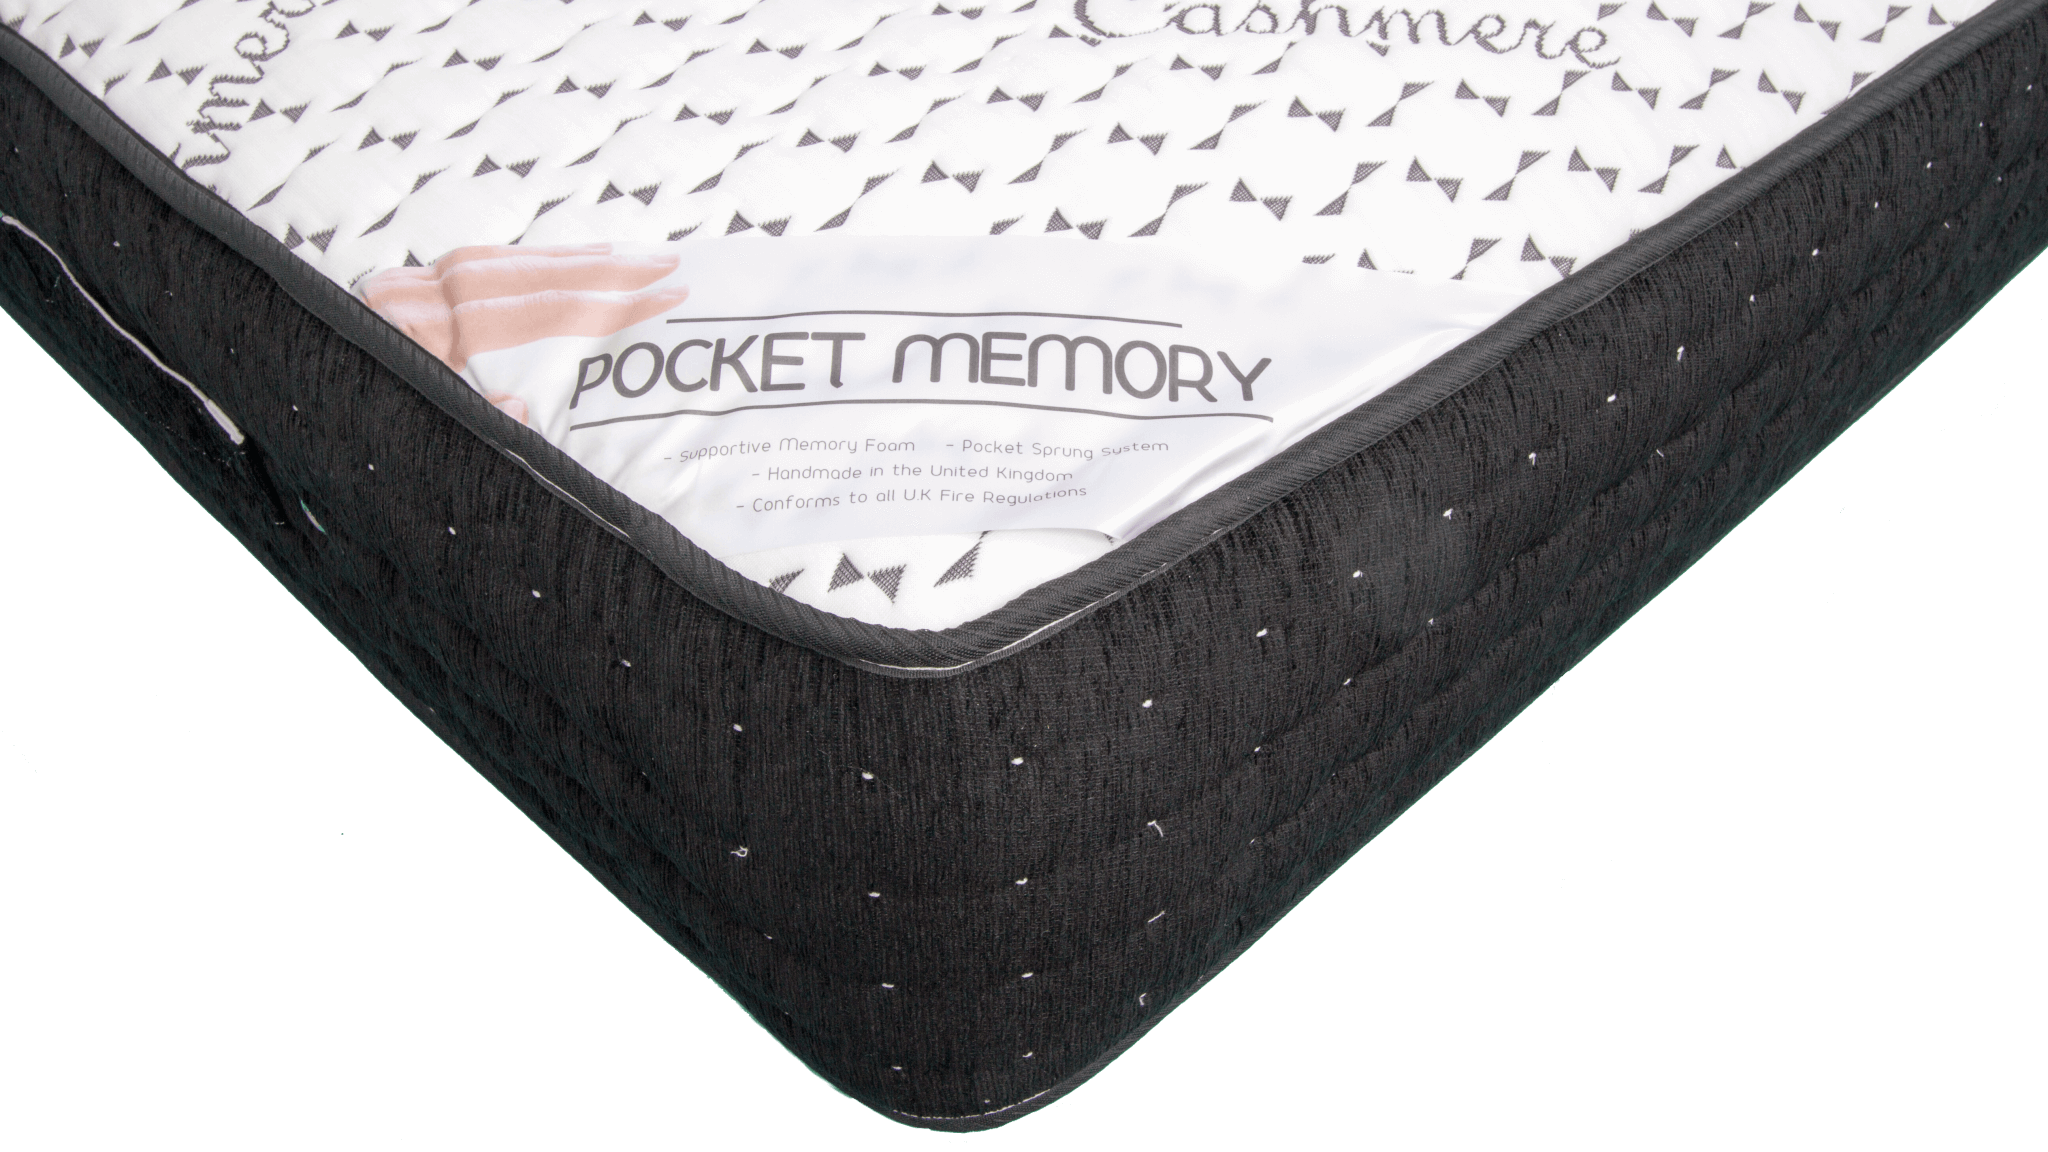 Single Pocket Sprung Memory Foam Mattress Orthopaedic Pocket Sprung Memory Foam Mattress